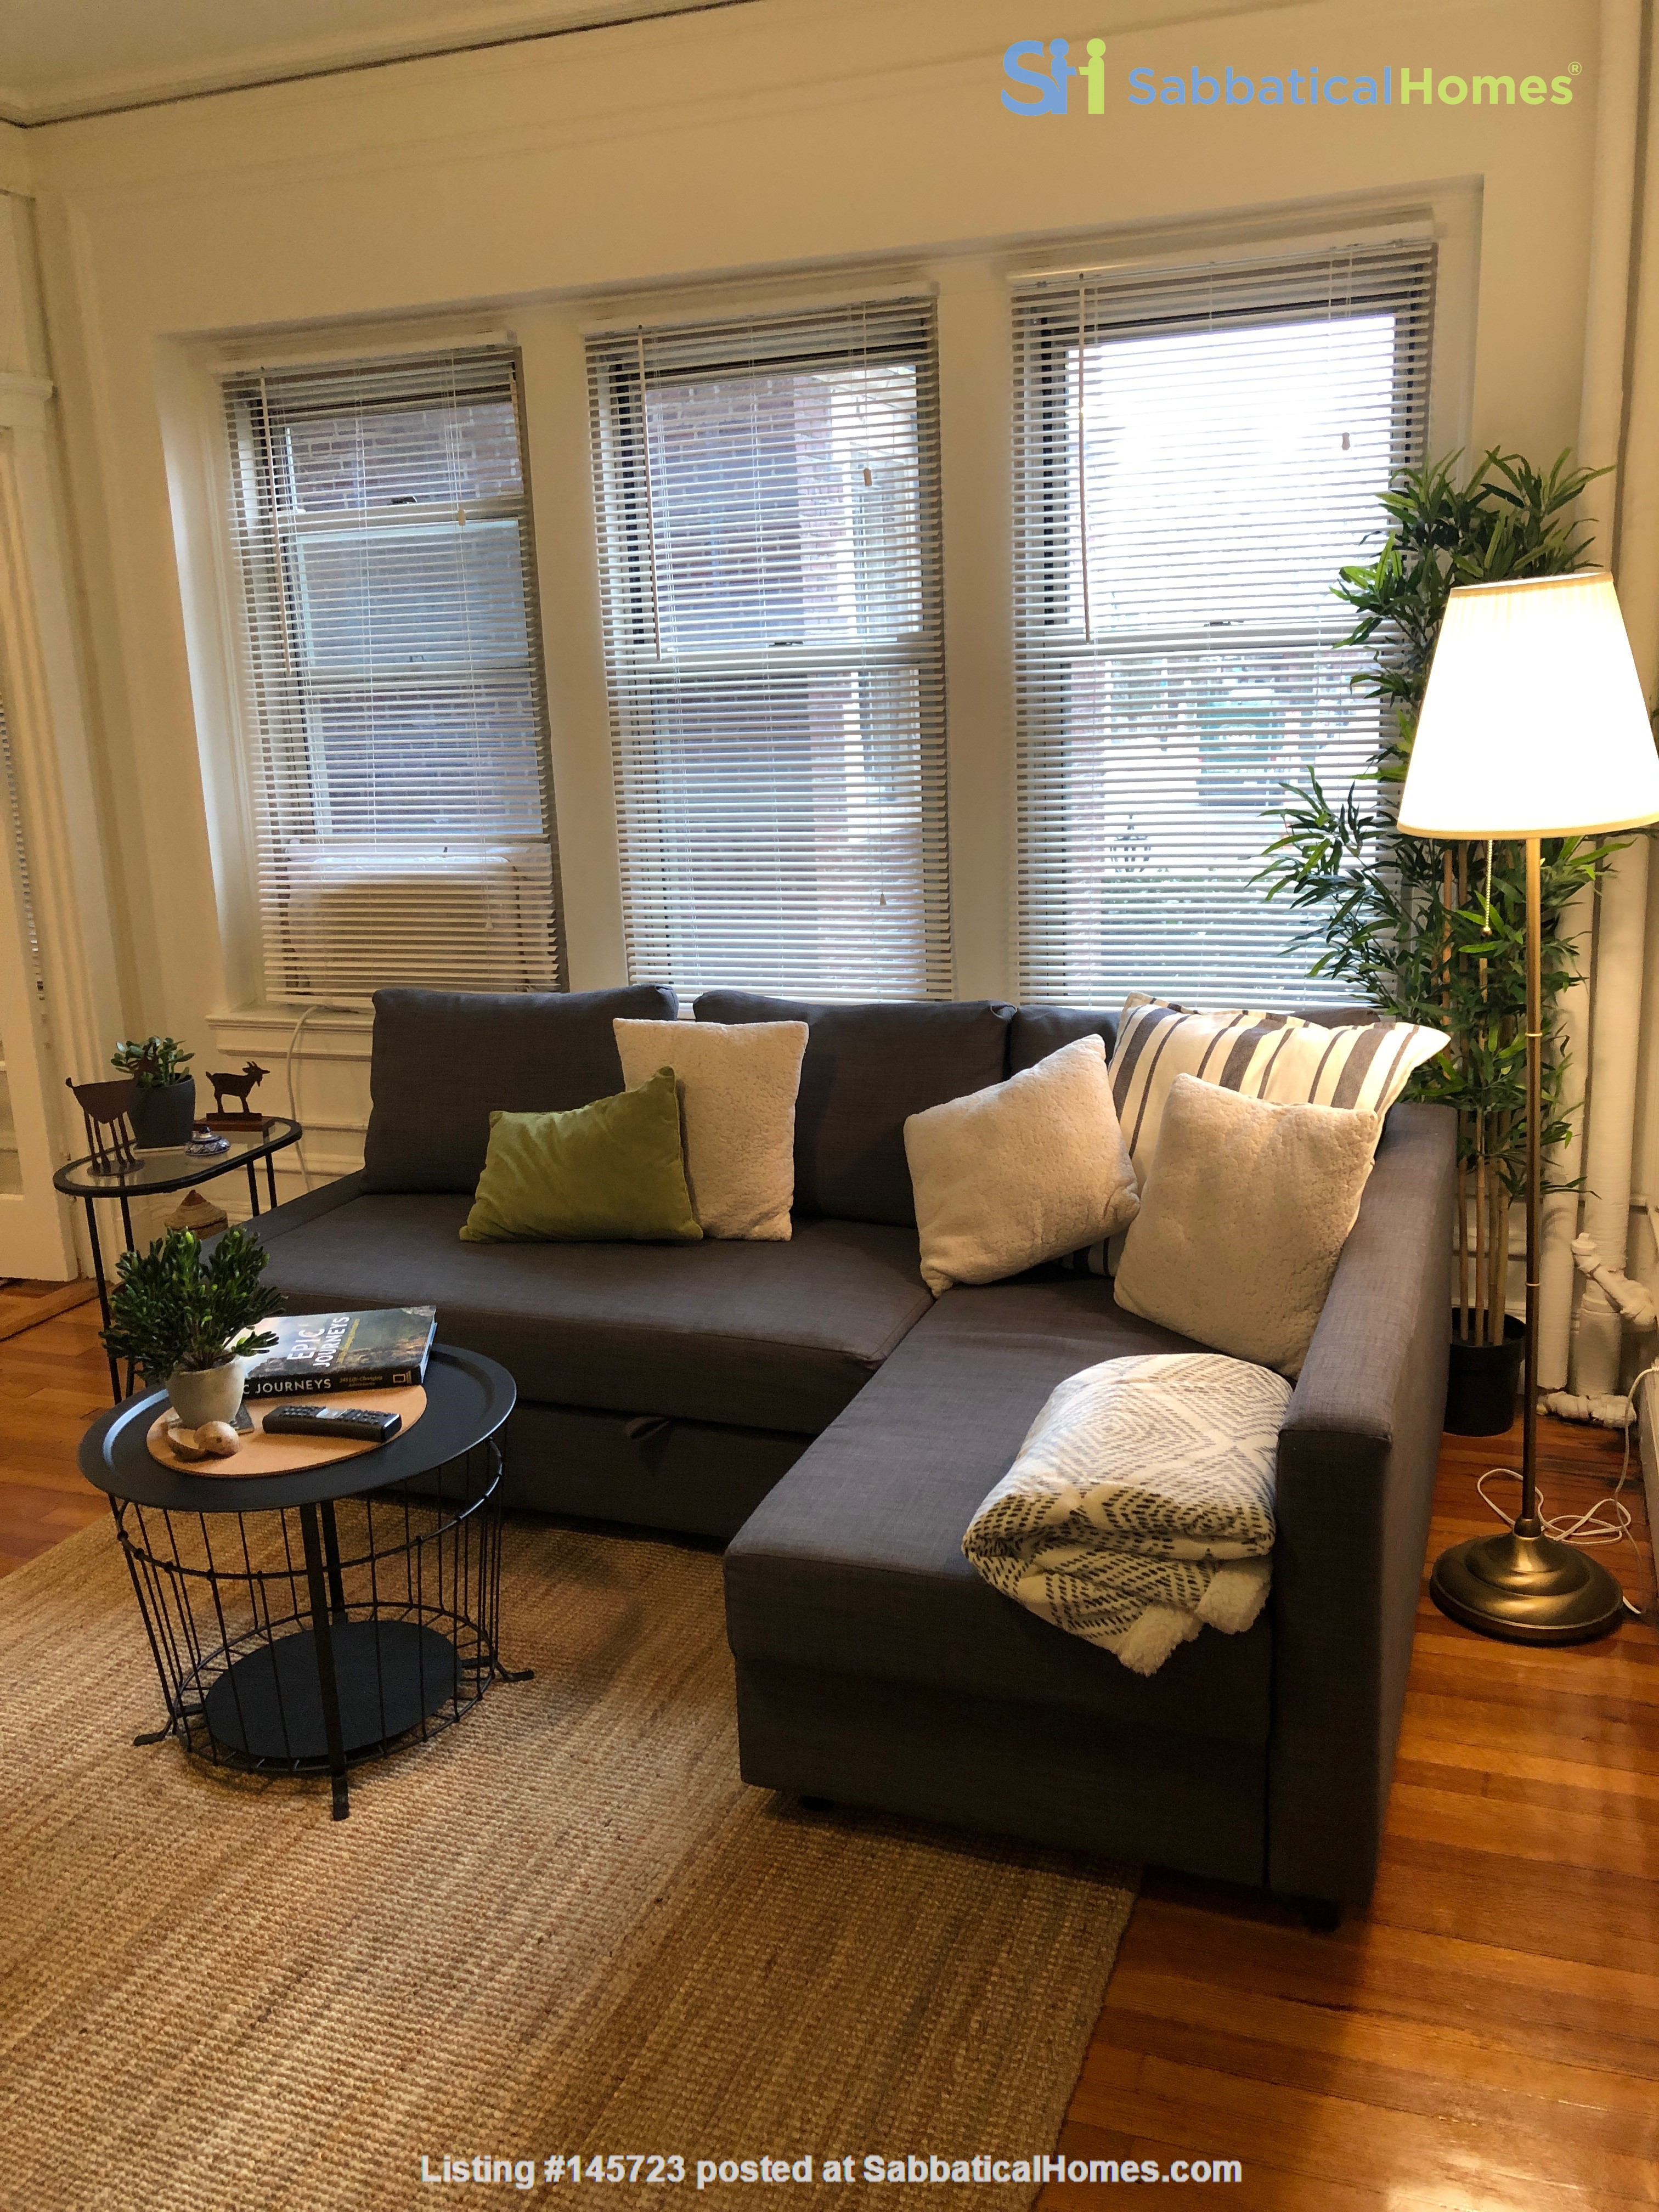 For Rent: A wonderful apartment in the heart of Harvard Square! Home Rental in Cambridge, Massachusetts, United States 2